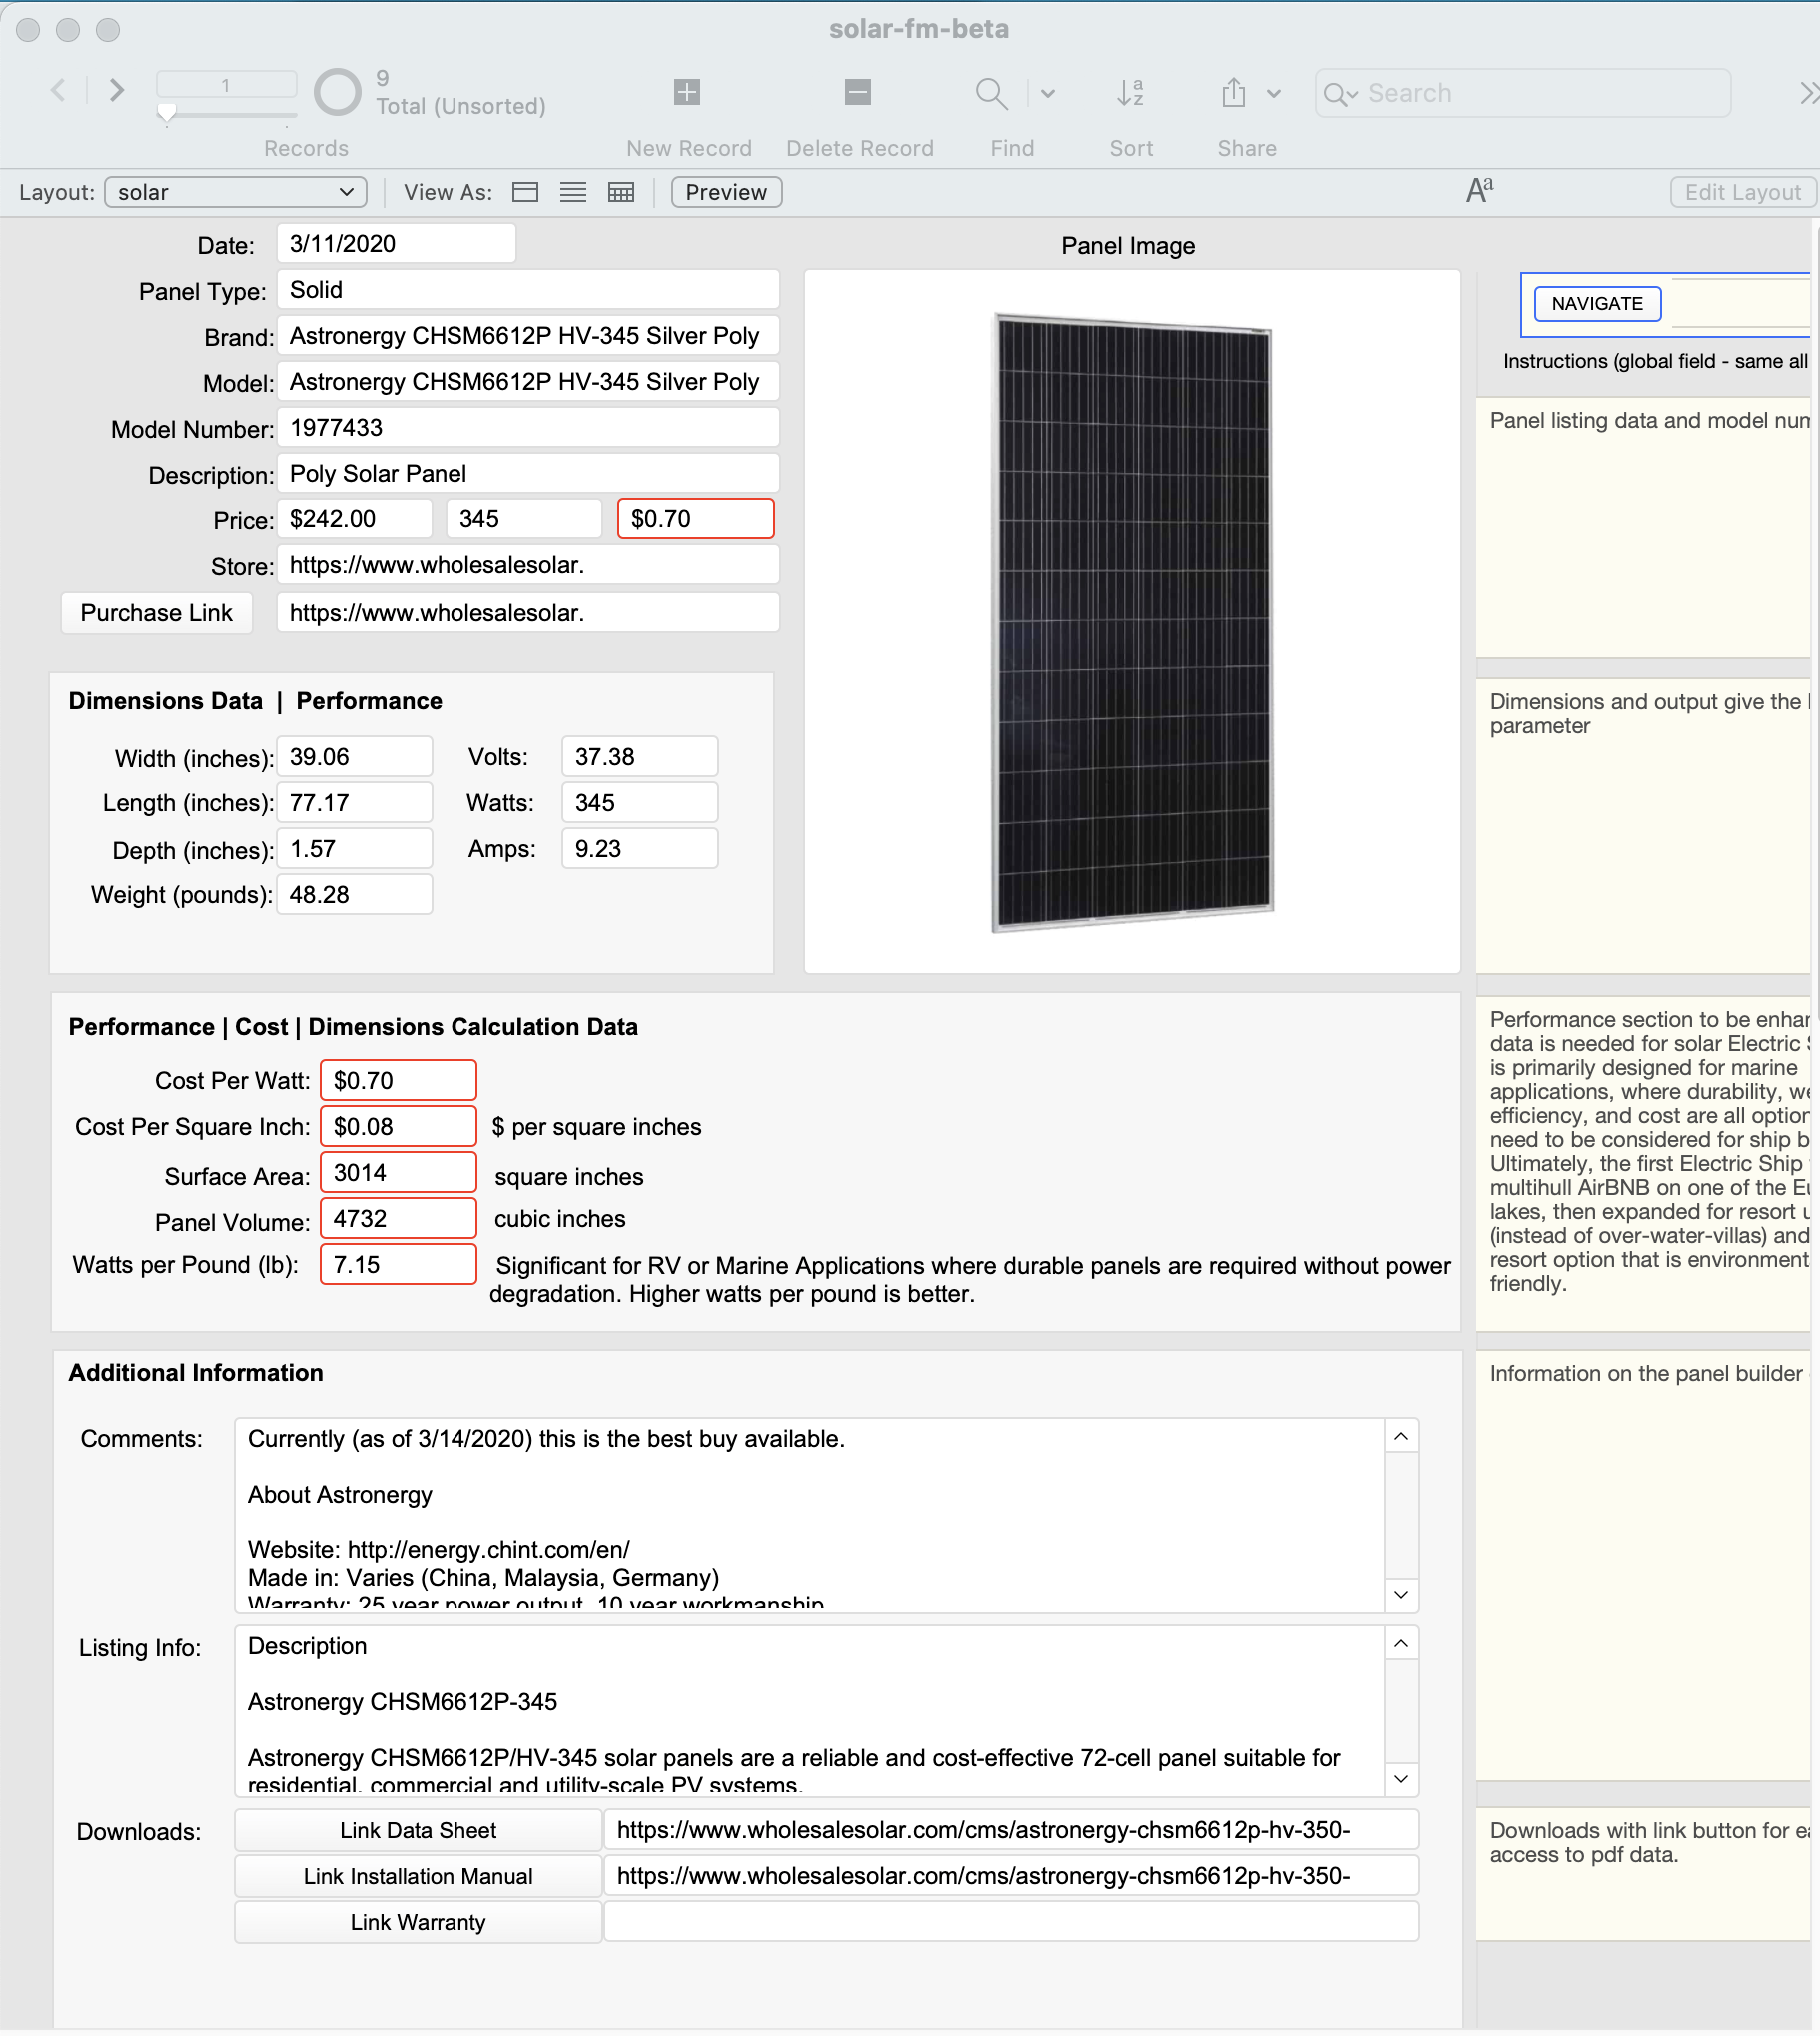 Solar Panel Cost and Performance Filemaker Solution Calculator